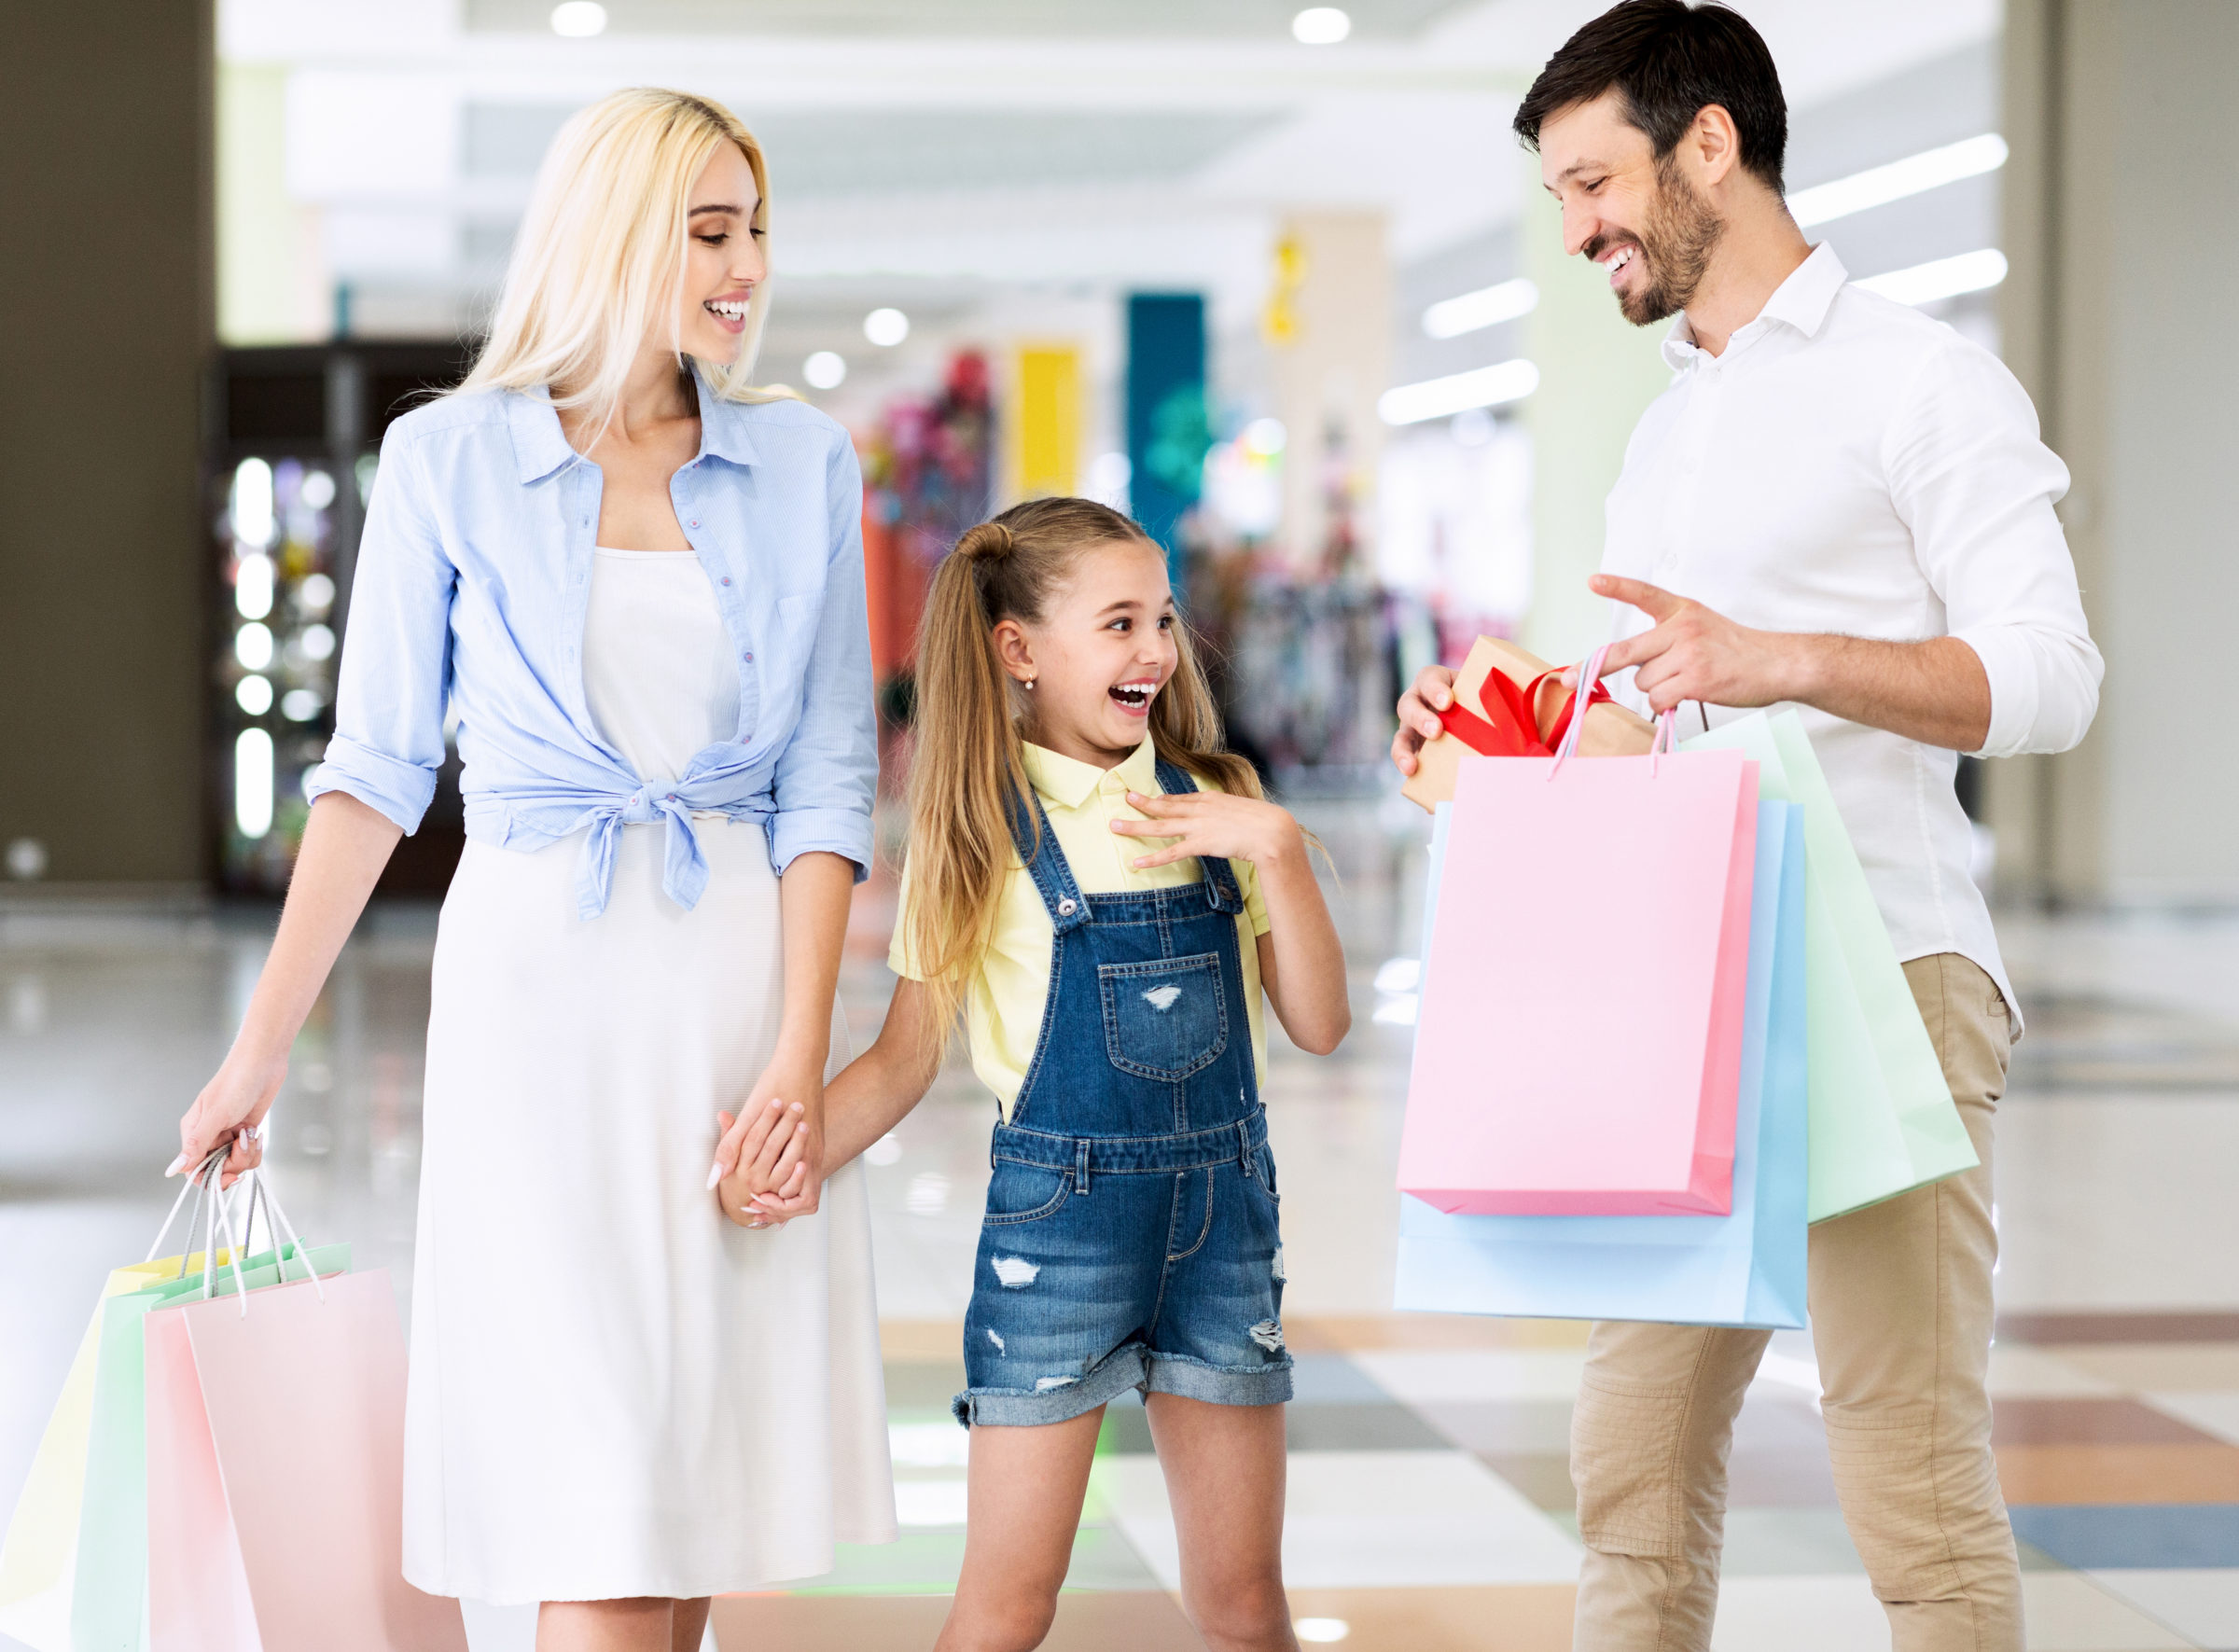 parents giving daughter a gift during shopping in 2021 04 02 20 25 30 utc